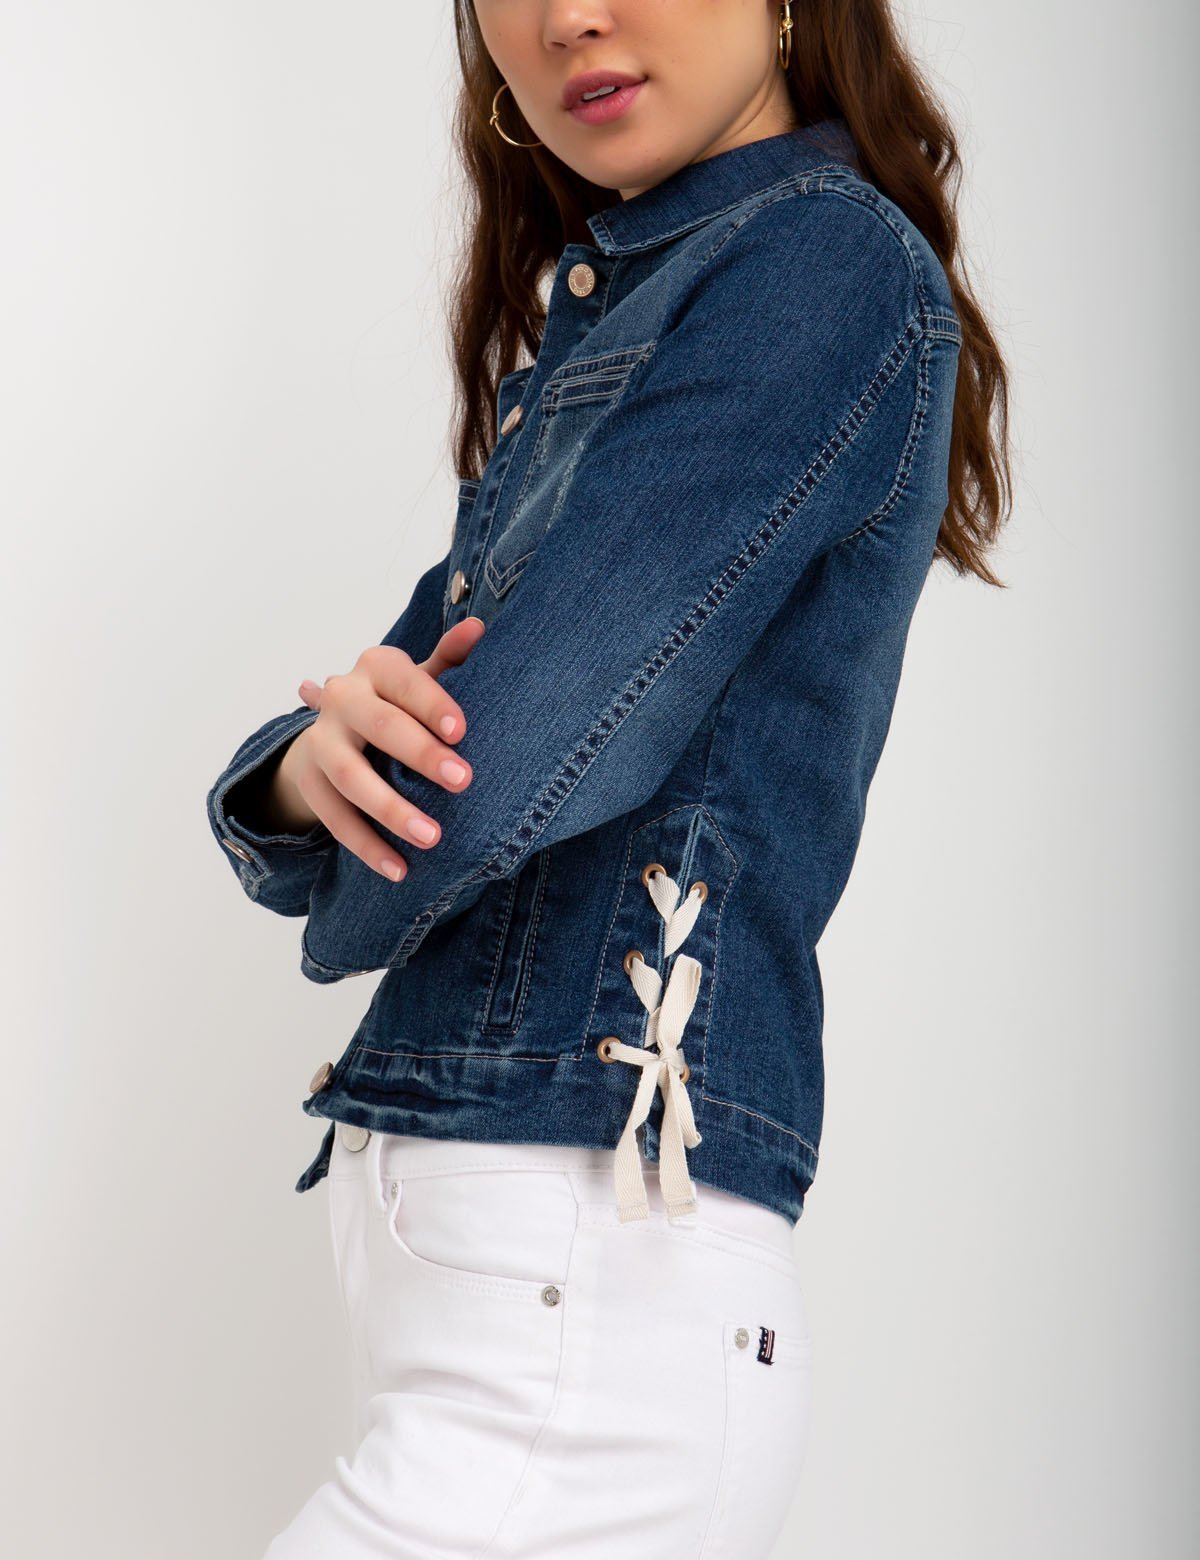 SIDE TIE DENIM JACKET - U.S. Polo Assn.